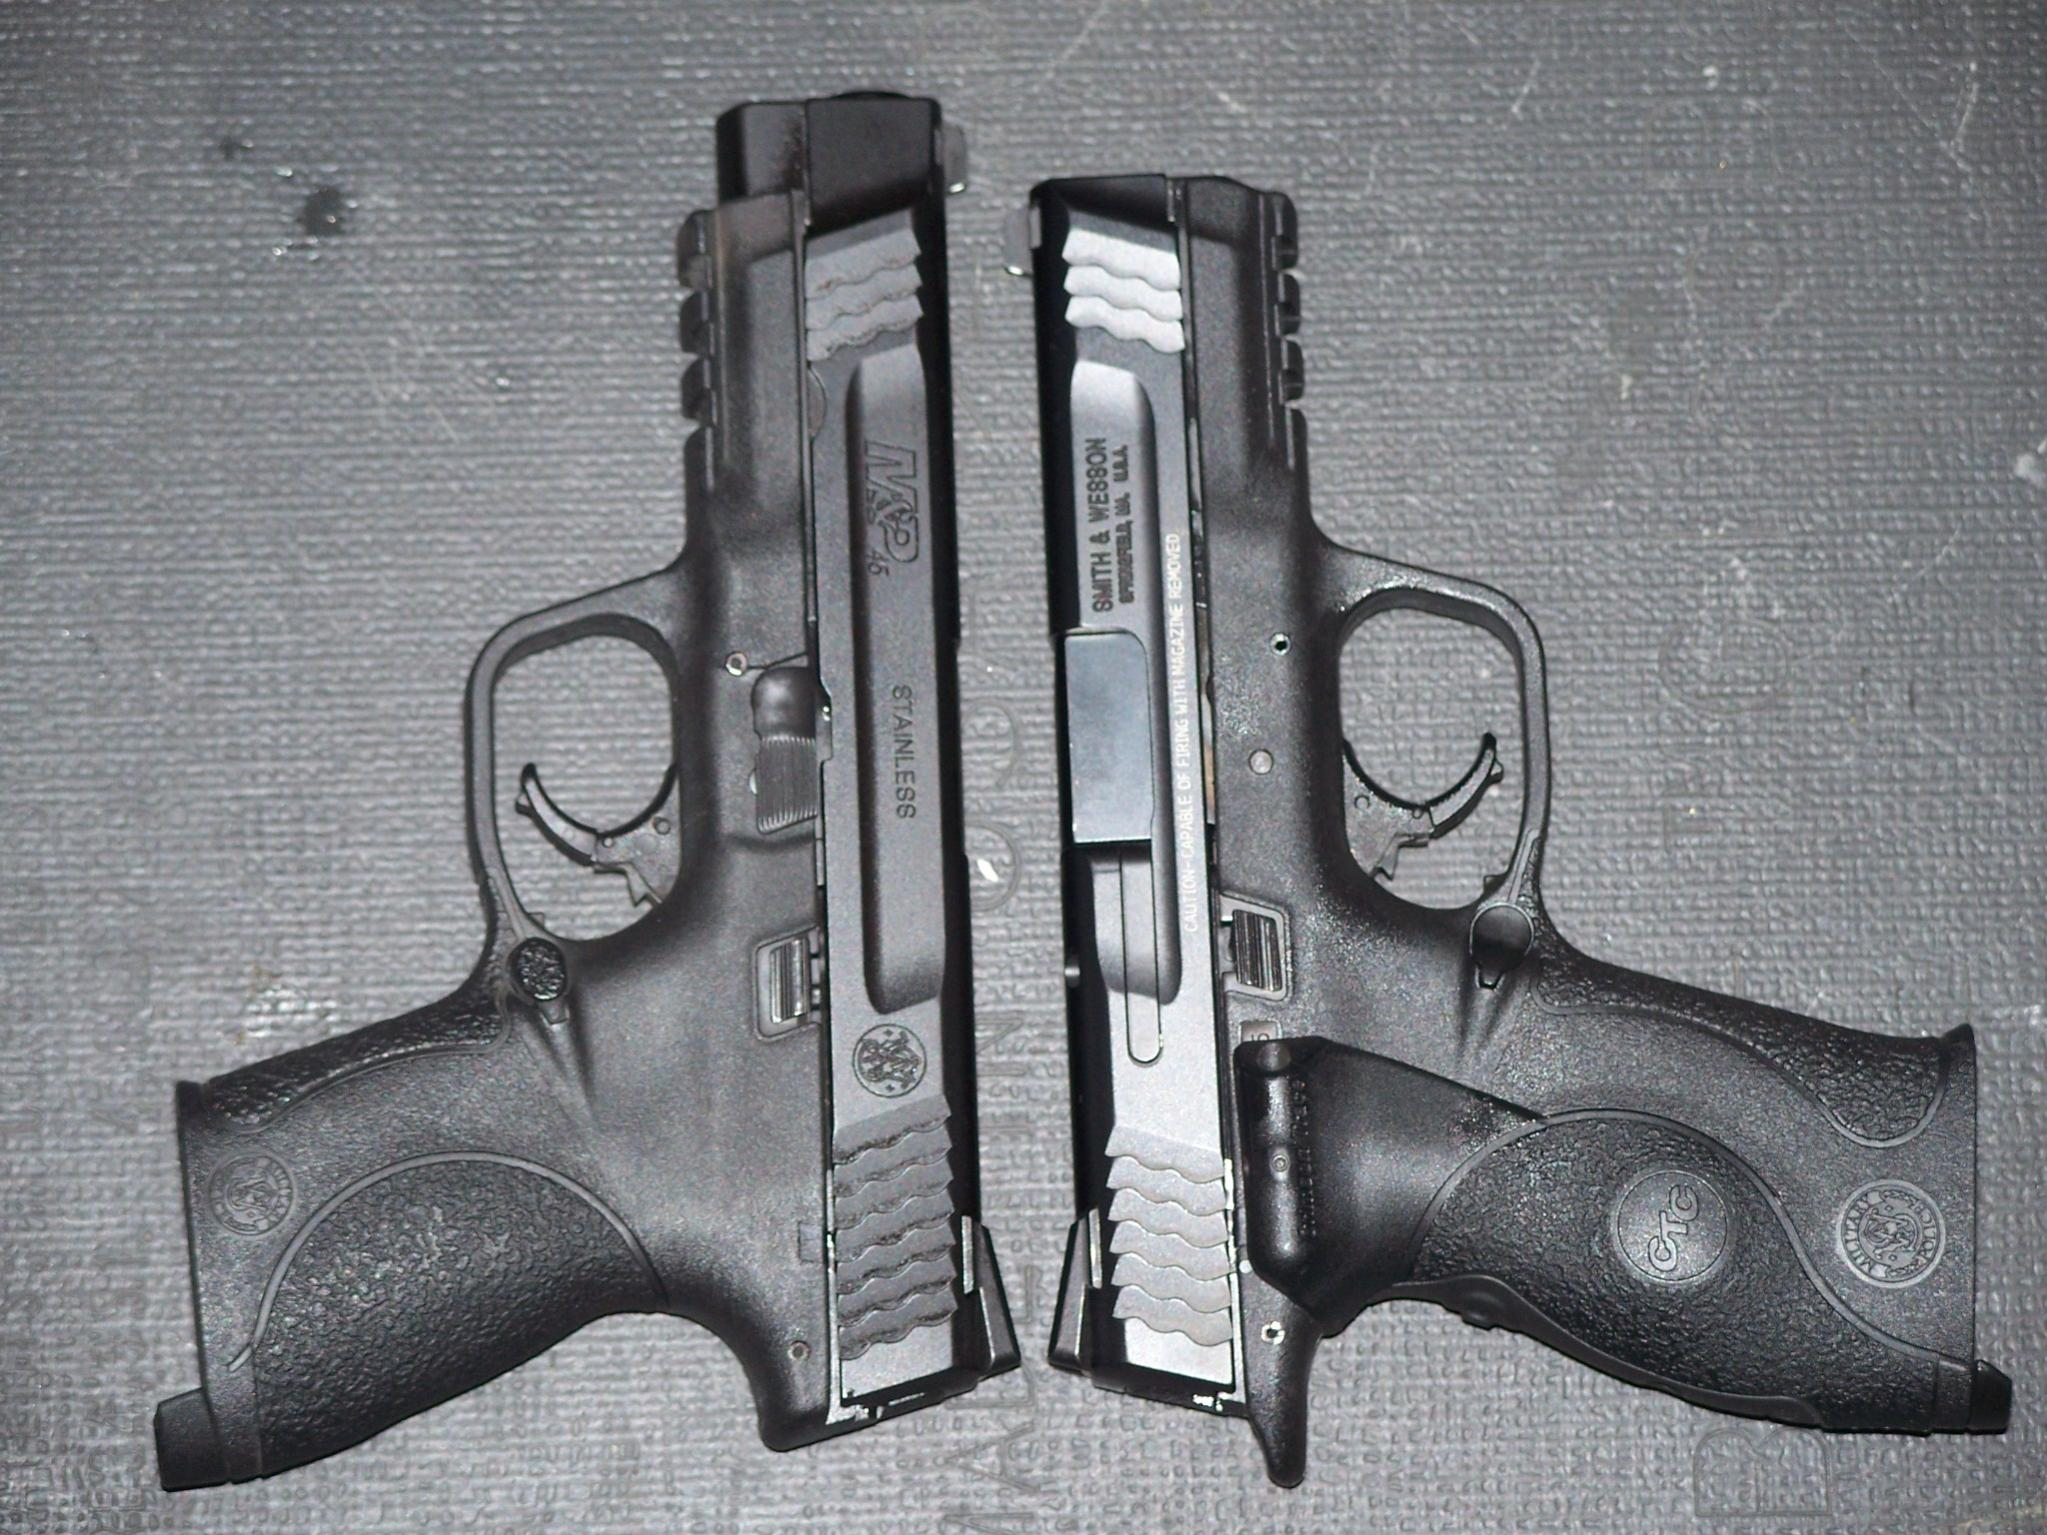 Who can tell what is wrong with this M&P pic?-101_6280.jpg